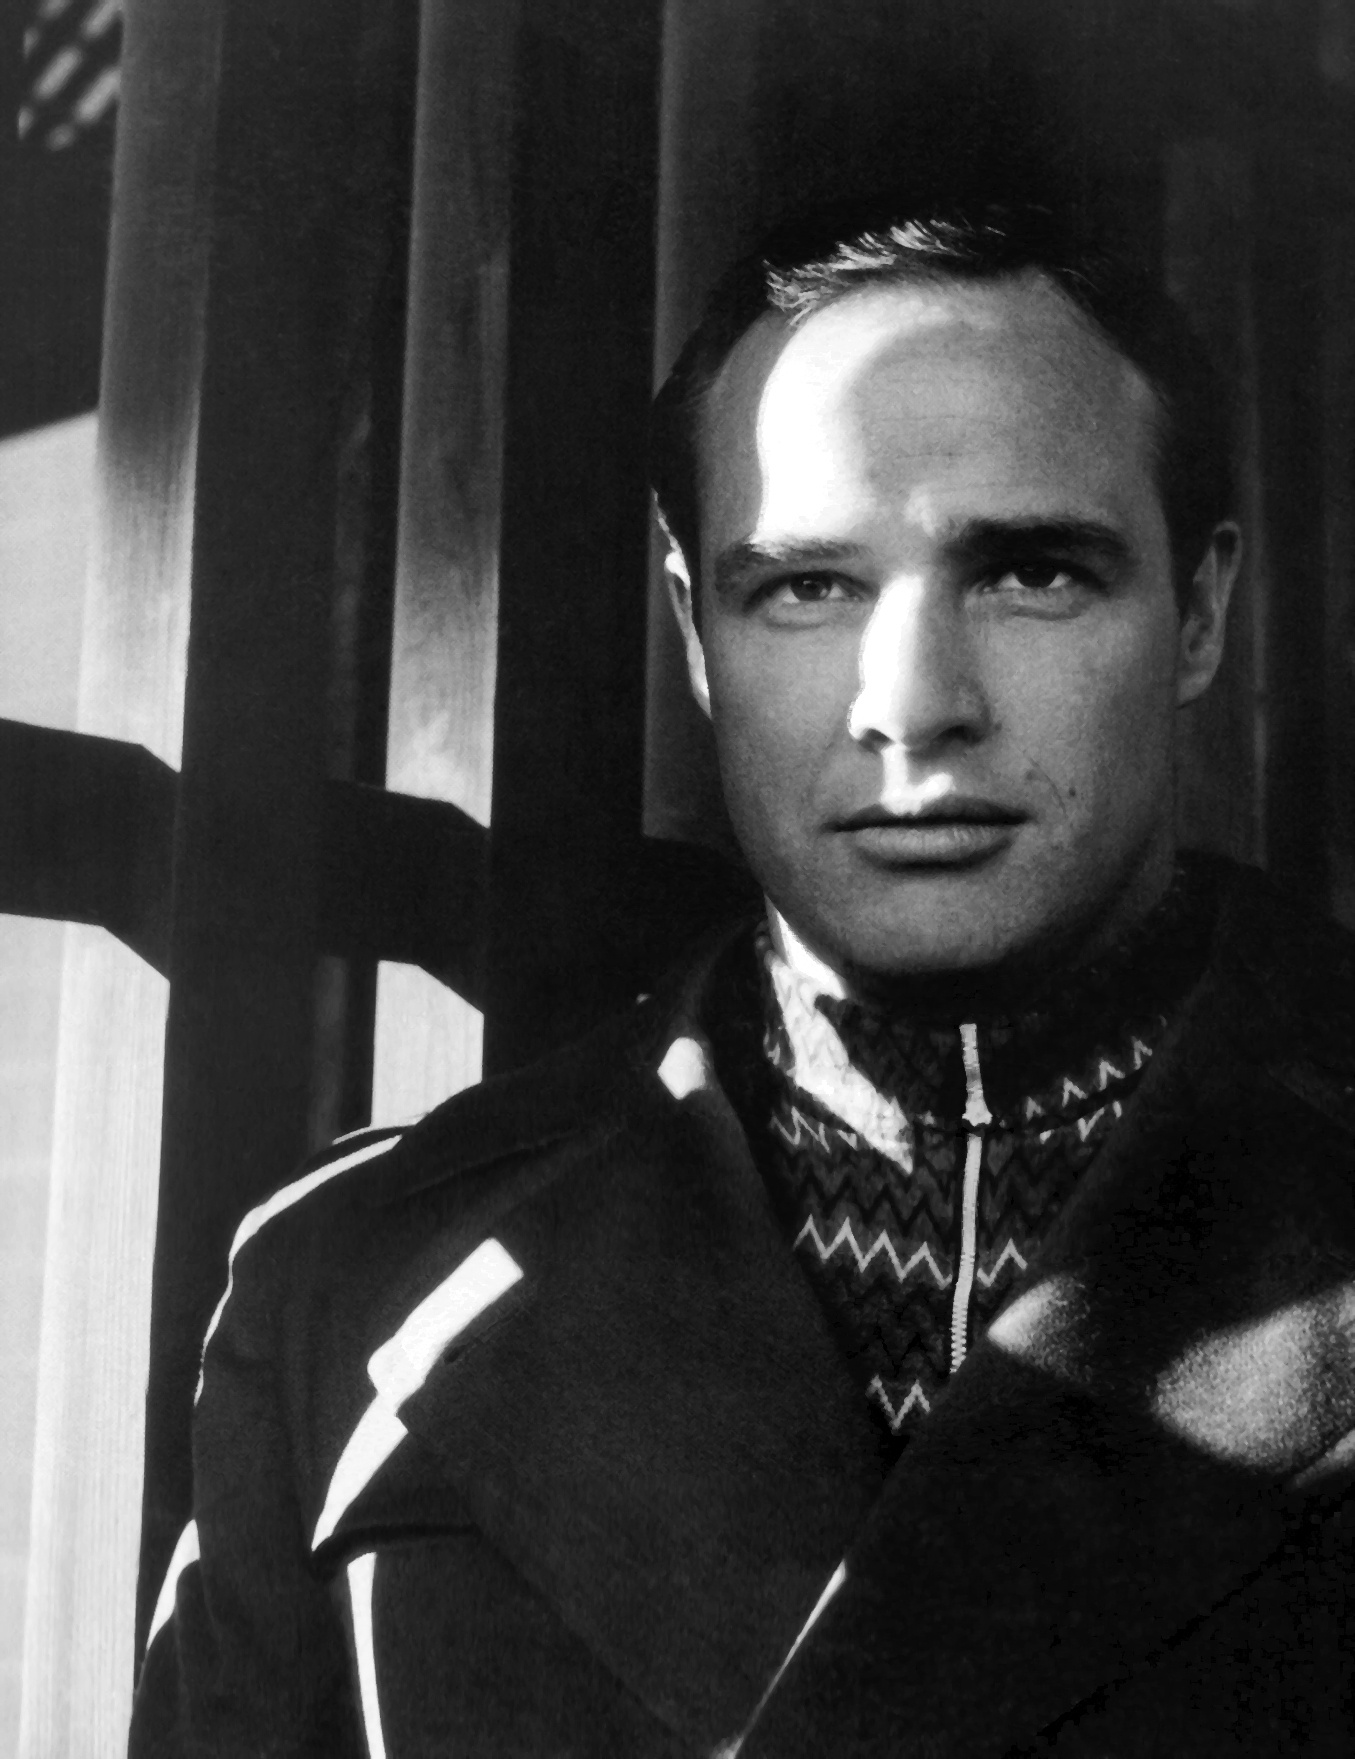 Marlon Brando Photos, Pictures, Images, Photo Gallery